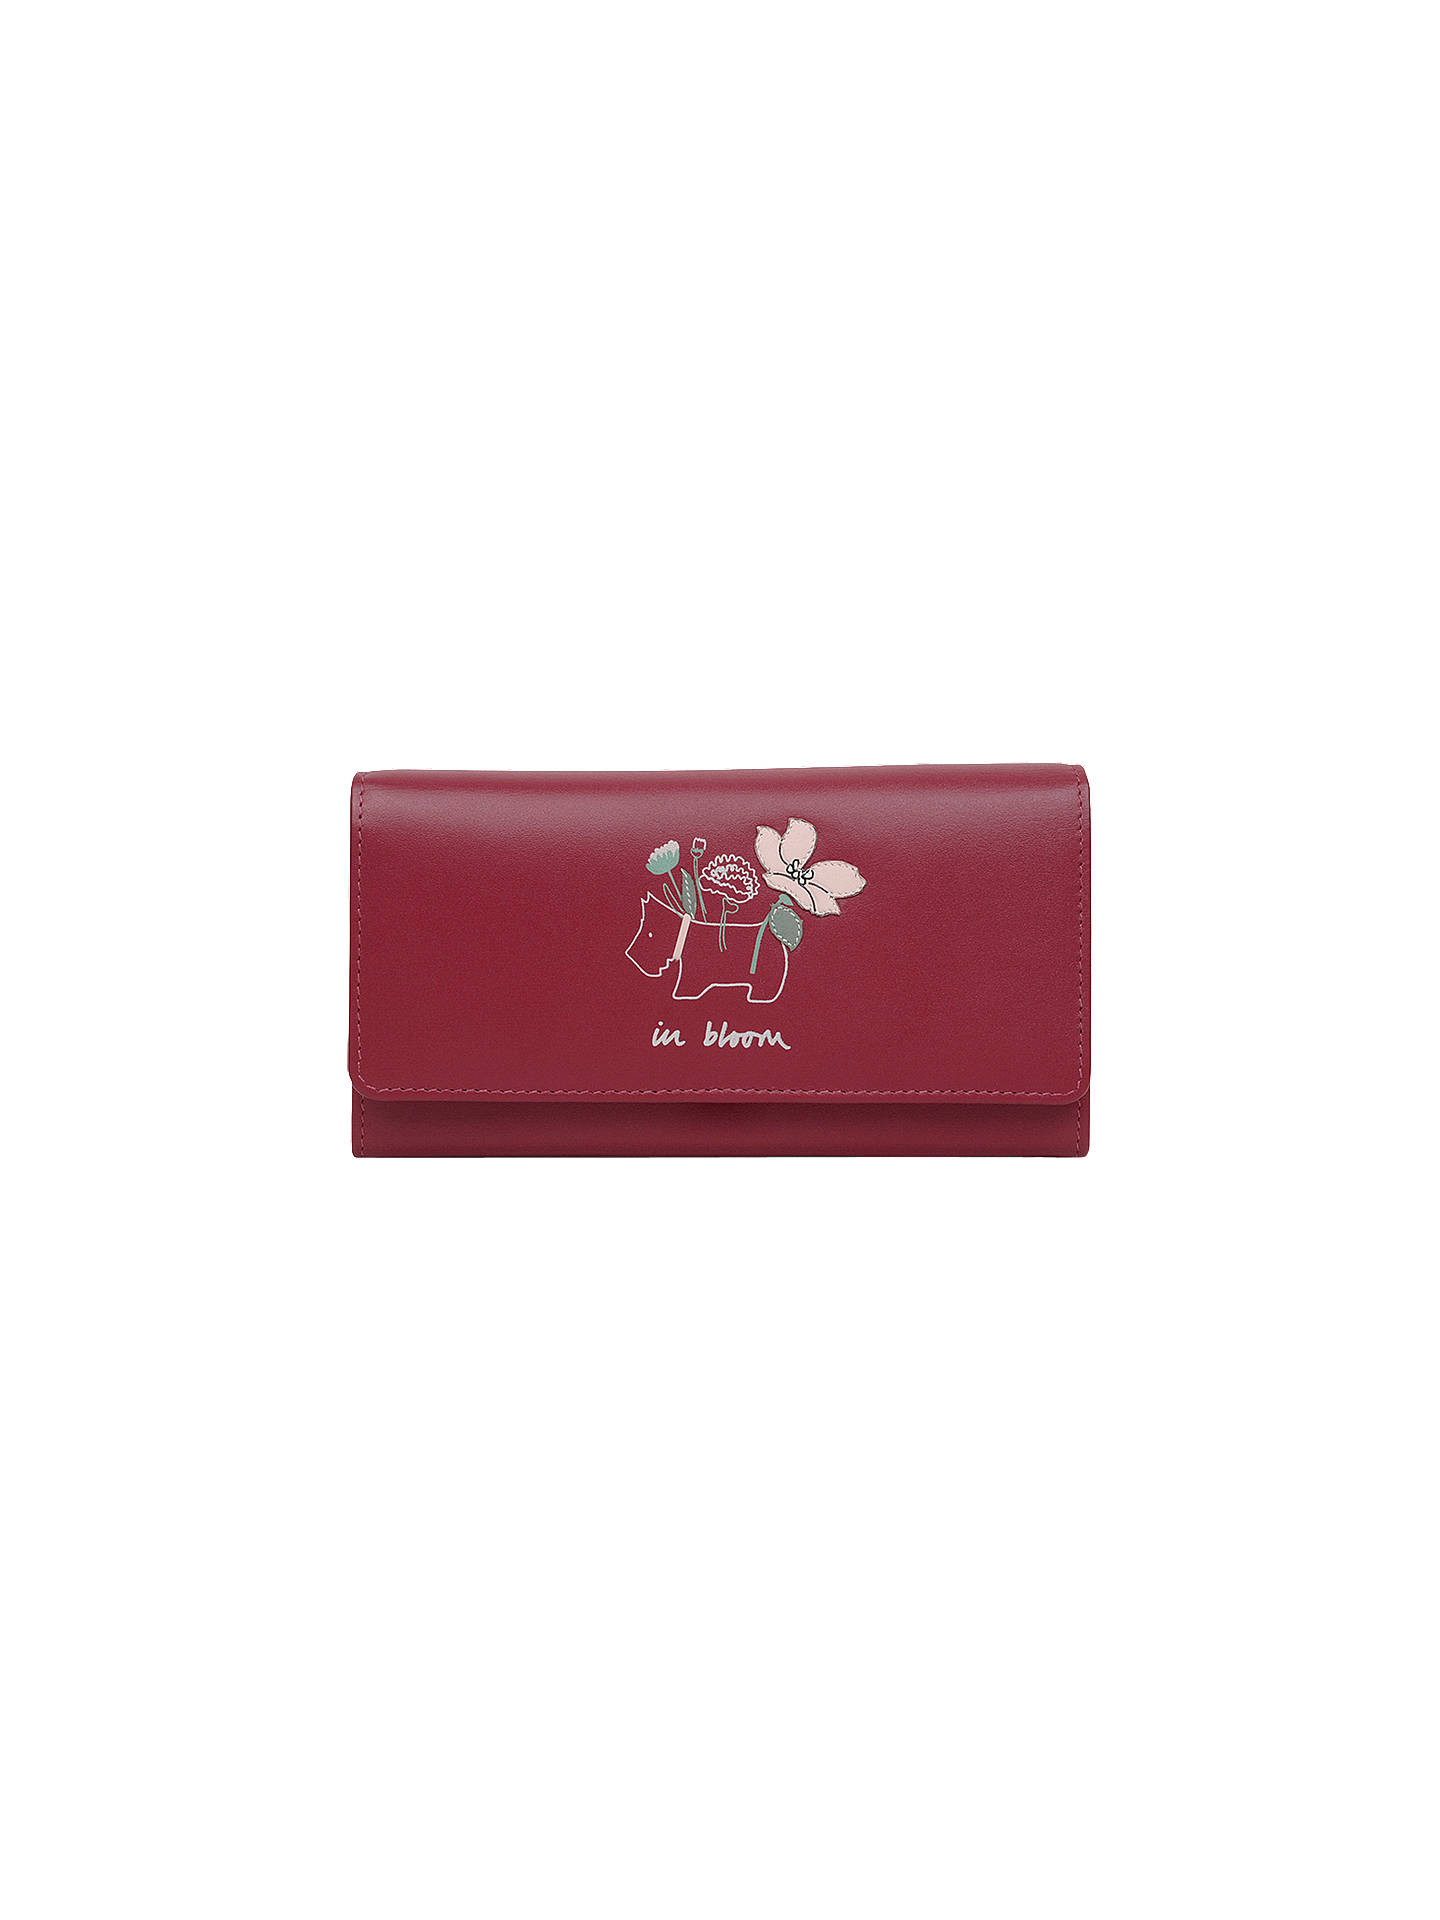 Buy Radley In Bloom Leather Large Flapover Matinee Purse, Red Online at johnlewis.com